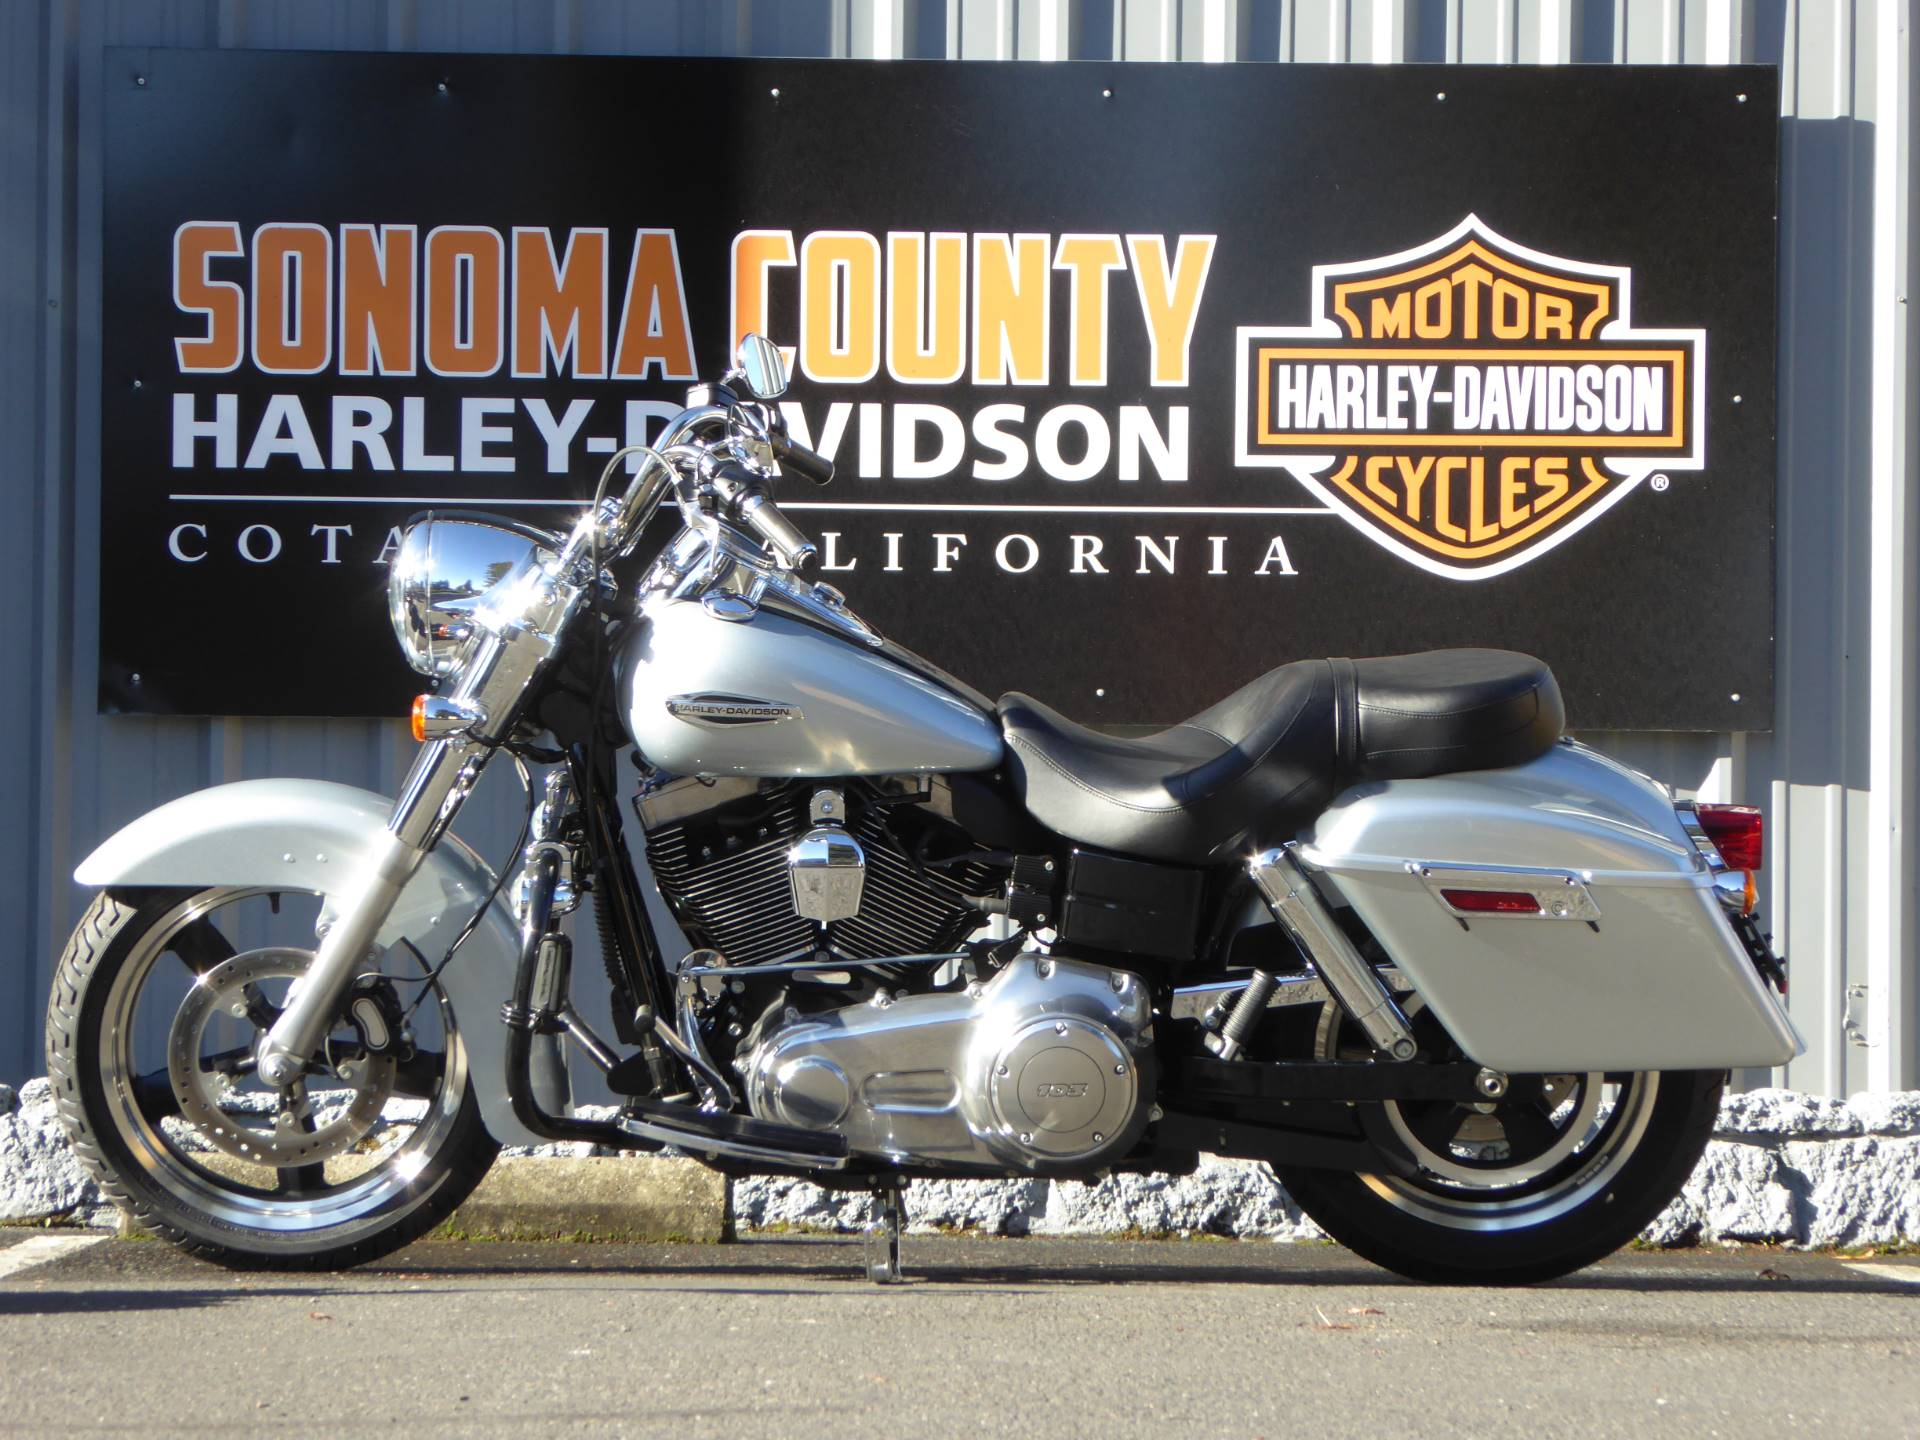 2012 Harley-Davidson DYNA SWITCHBACK in Cotati, California - Photo 6